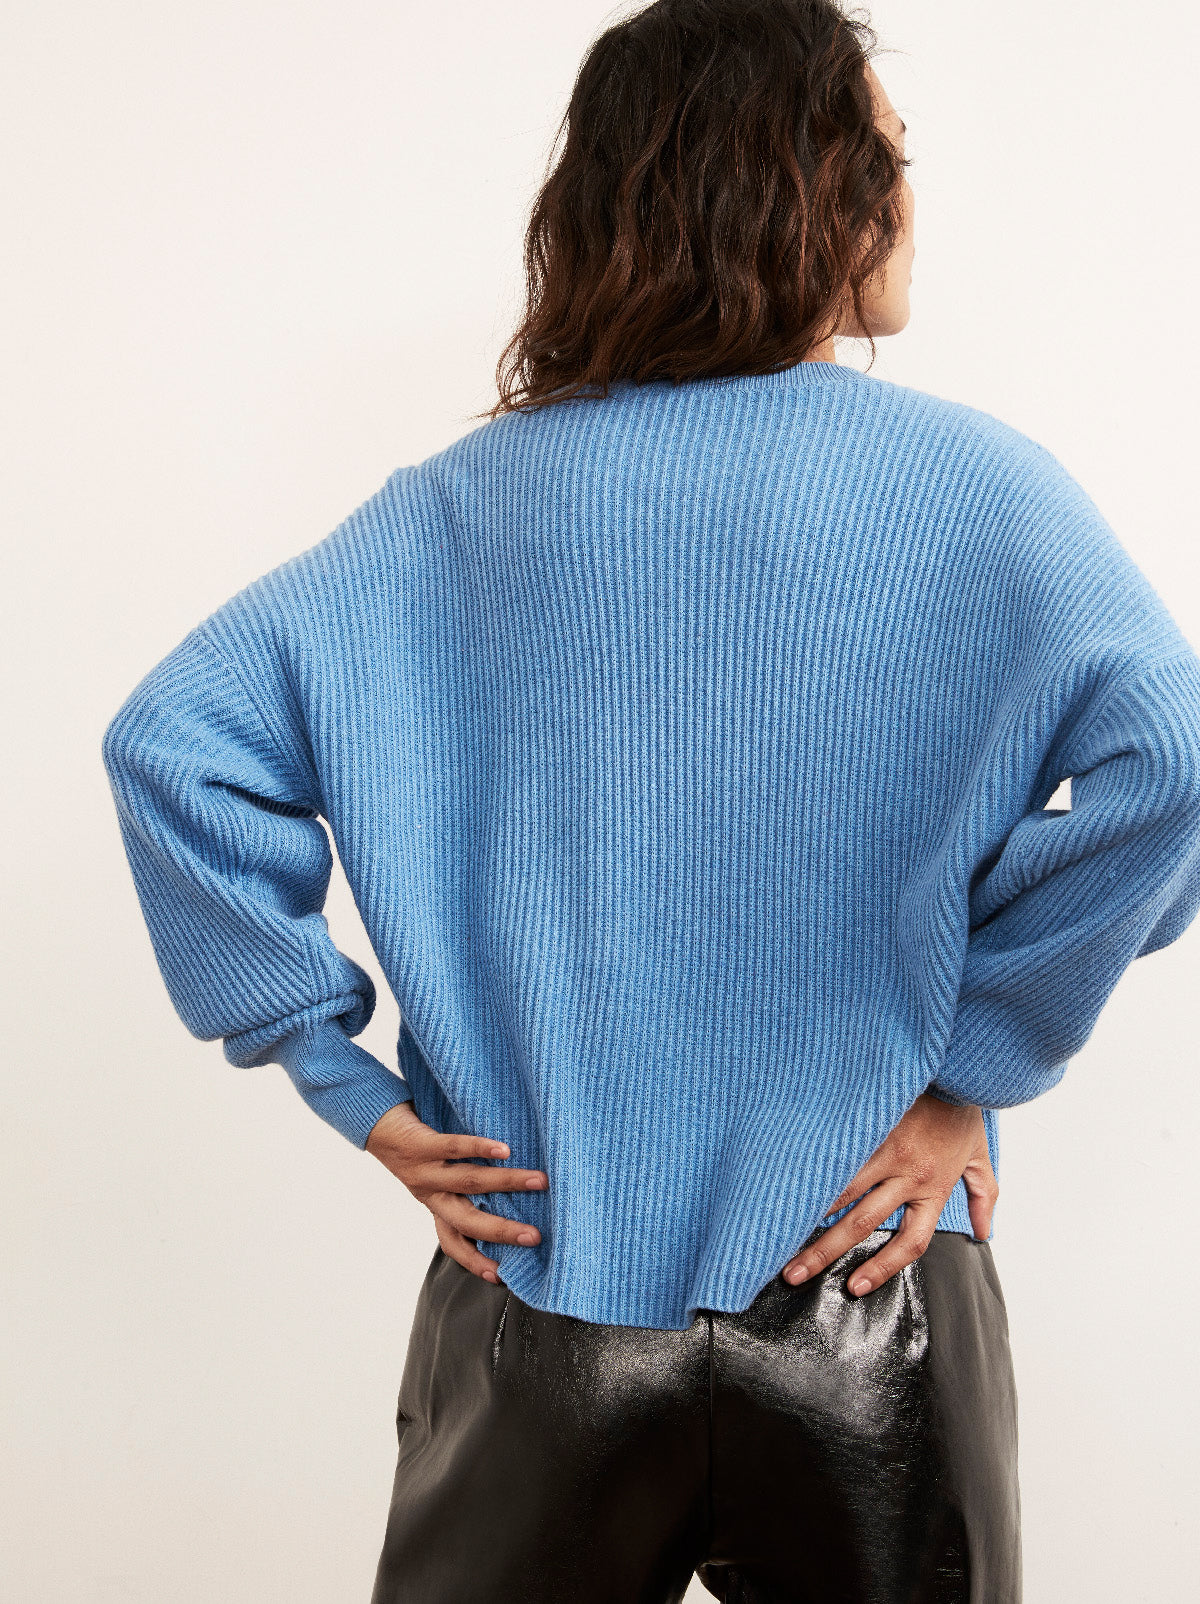 6408fa59baa Hettie Blue Crew Neck Jumper